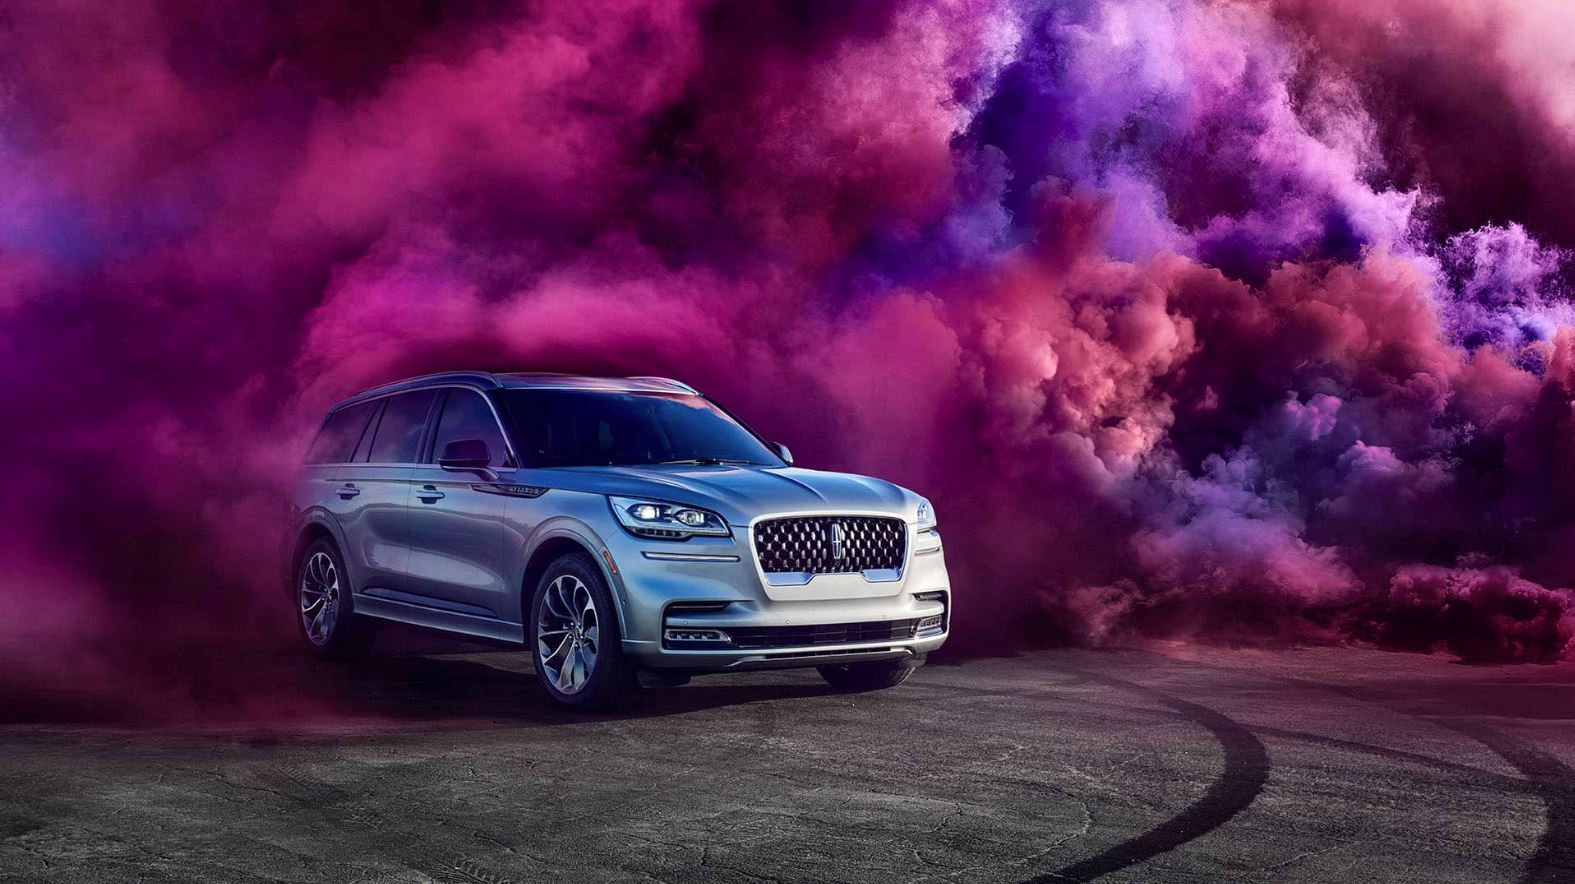 Lincoln Motor Company >> New Matthew McConaughey Lincoln Aviator Commercial is a Big Hit - The News Wheel